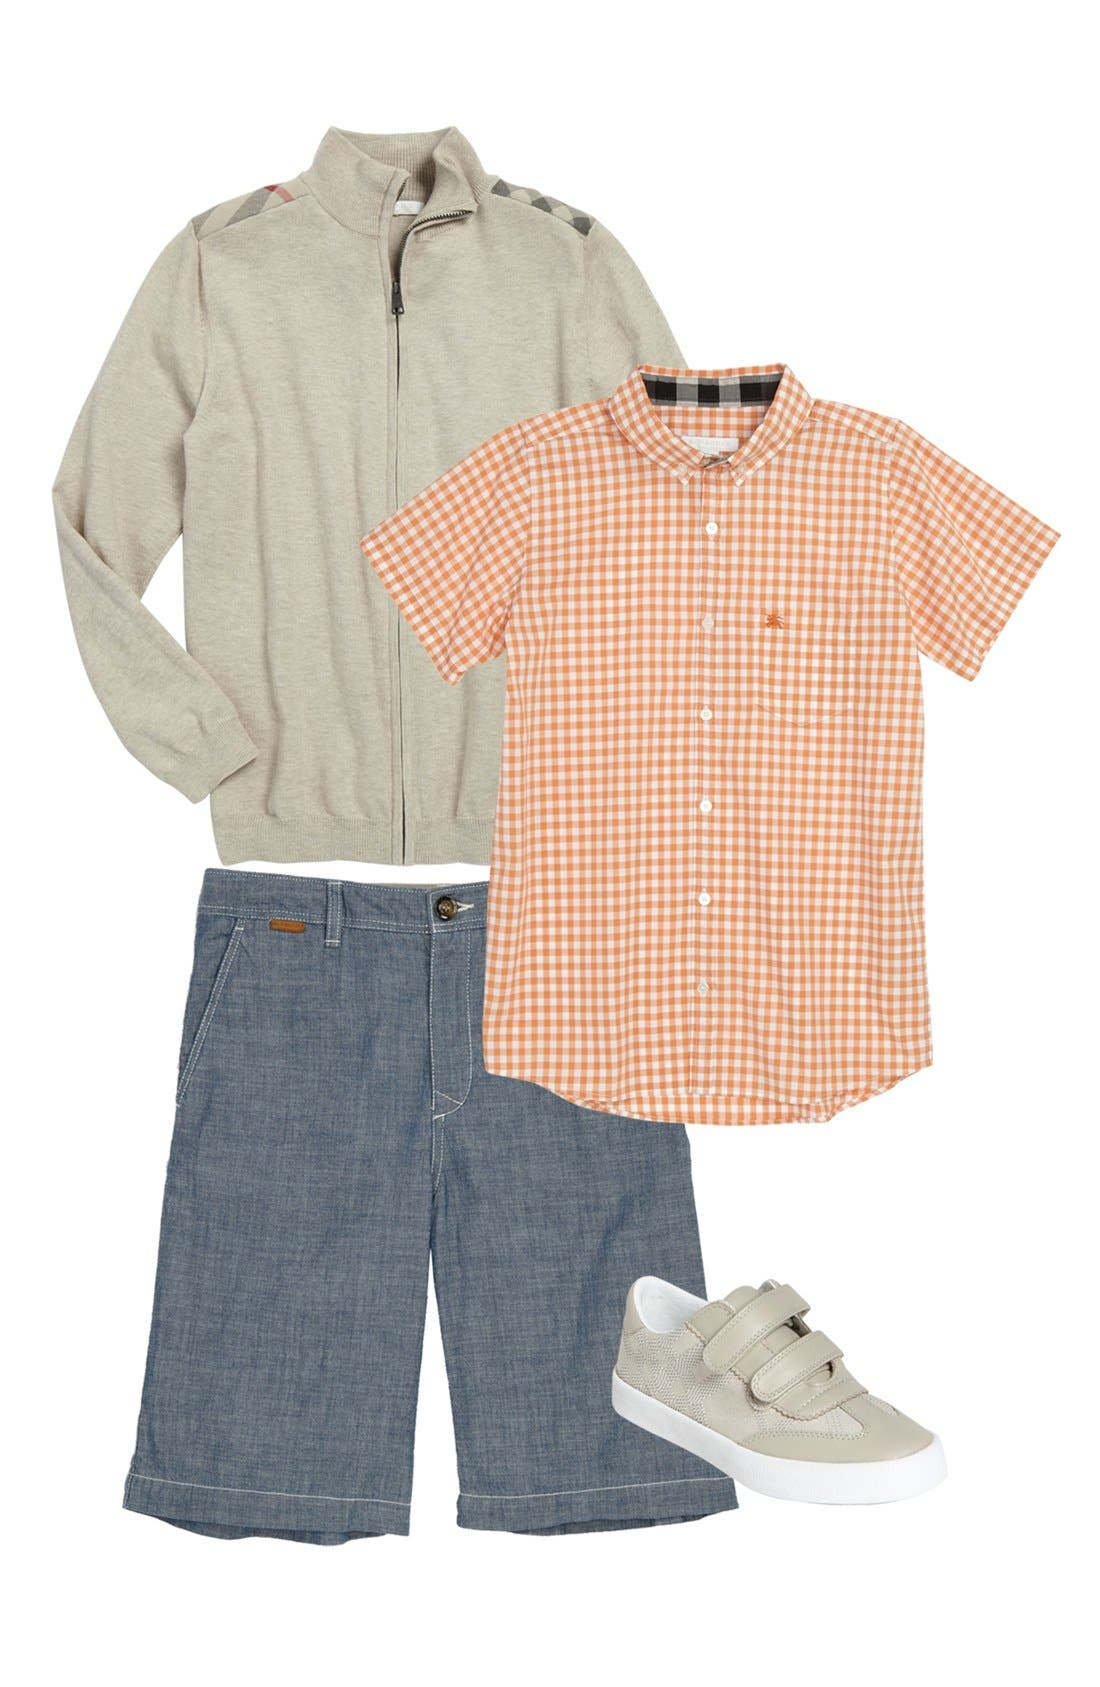 Main Image - Burberry Woven Shirt, Sweater, Shorts & Sneaker (Little Boys & Big Boys)